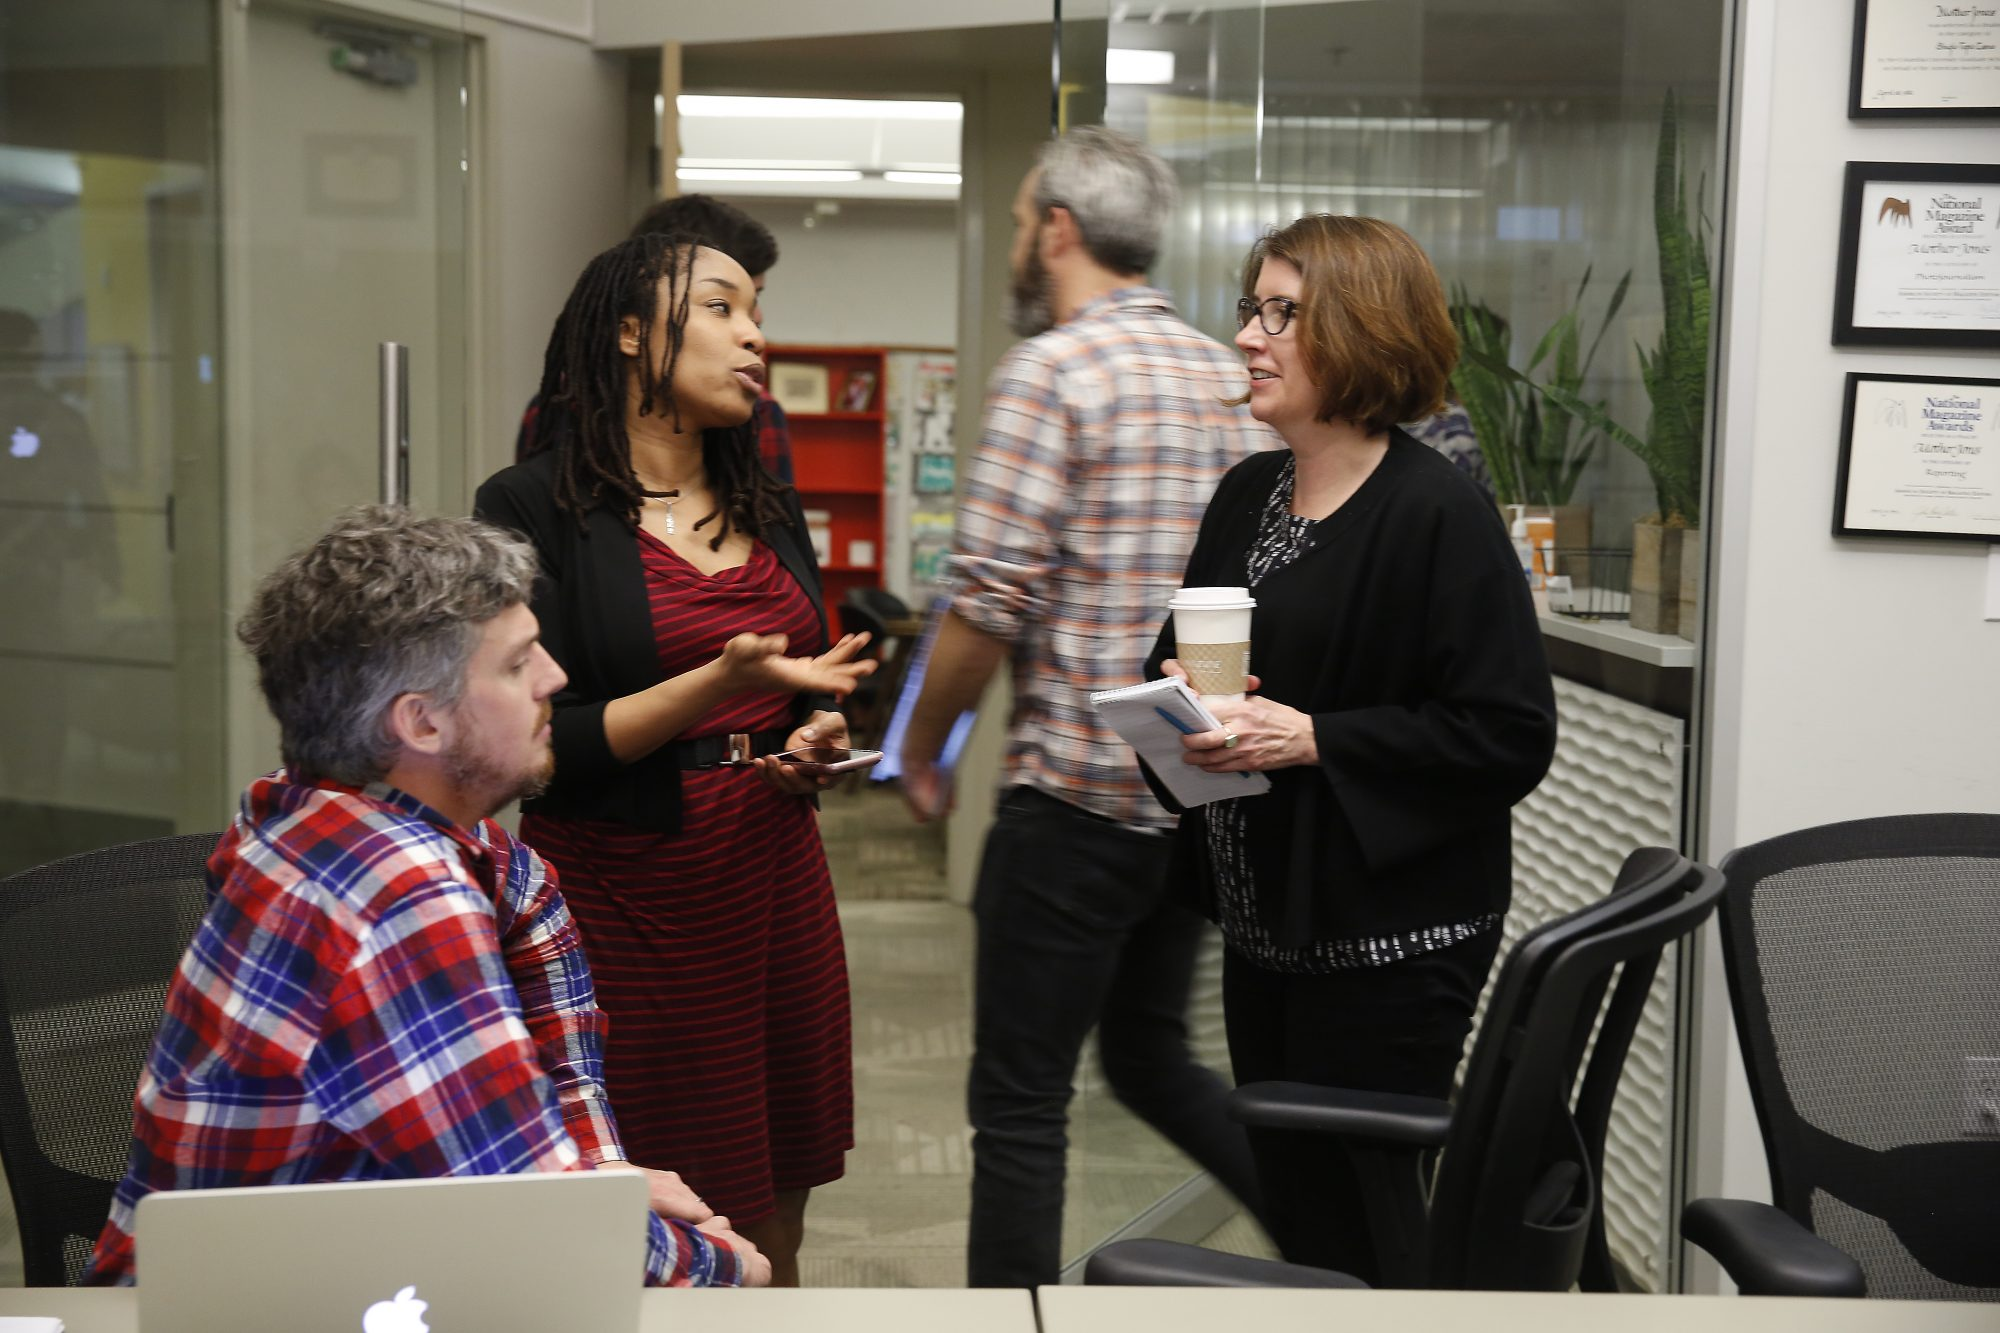 Mother Jones' editor in chief Clara Jeffery (right) talks with Jahna Berry (center), director of news product and Clint Hendler (left), news director after a news meeting on Thursday, March 2, 2017 in San Francisco, Calif.